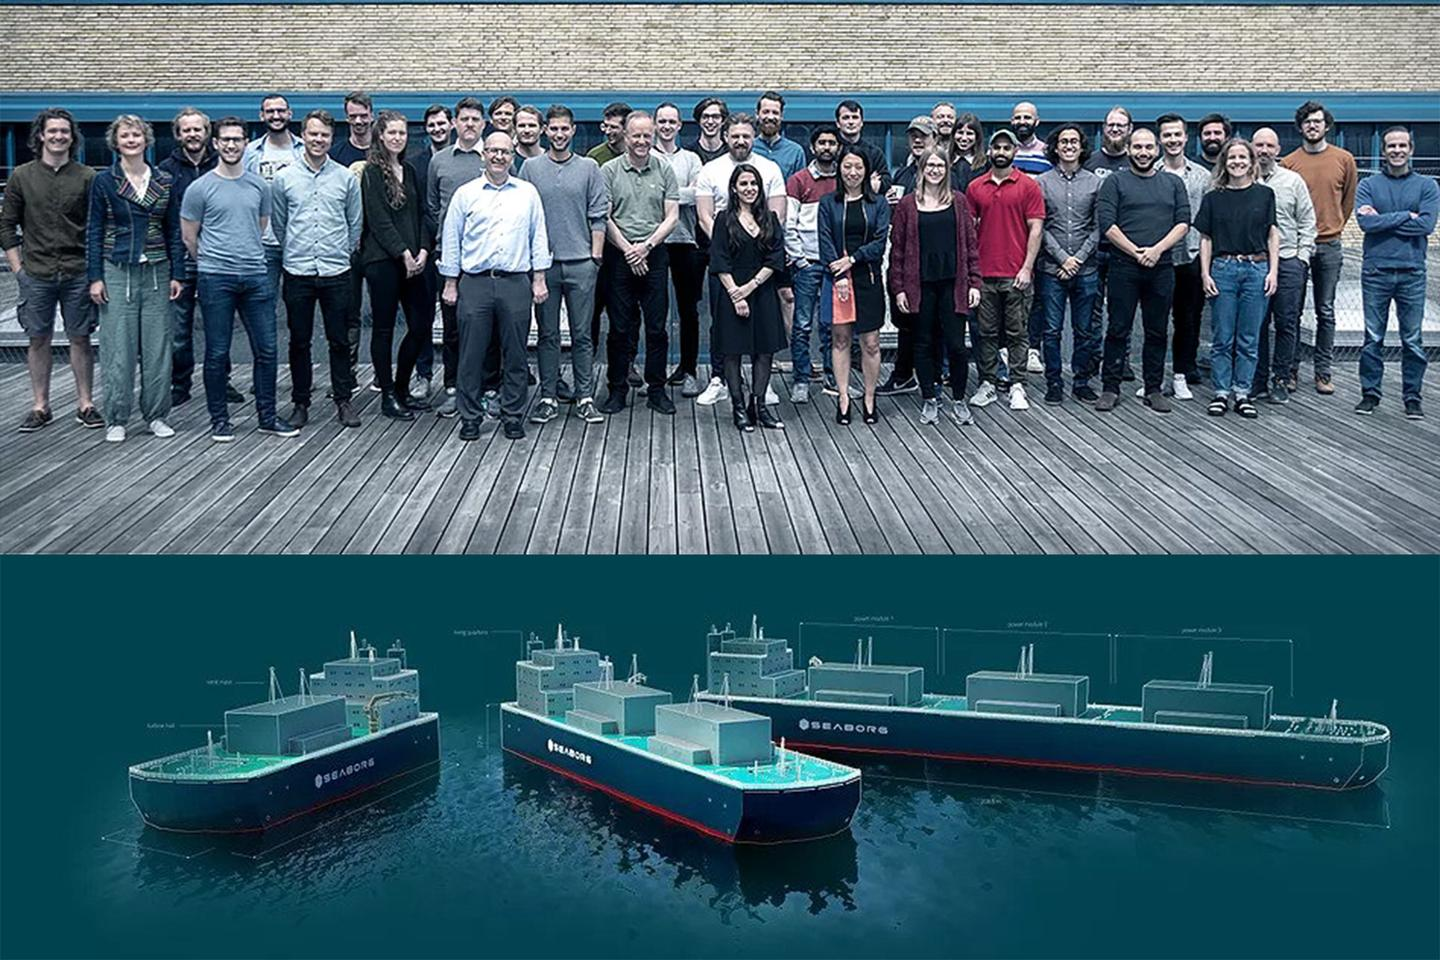 Molten salt nuclear reactors on floating barges, mass-produced in their thousands and deployed super-quickly across the globe: that's the plan for Denmark's Seaborg Technologies